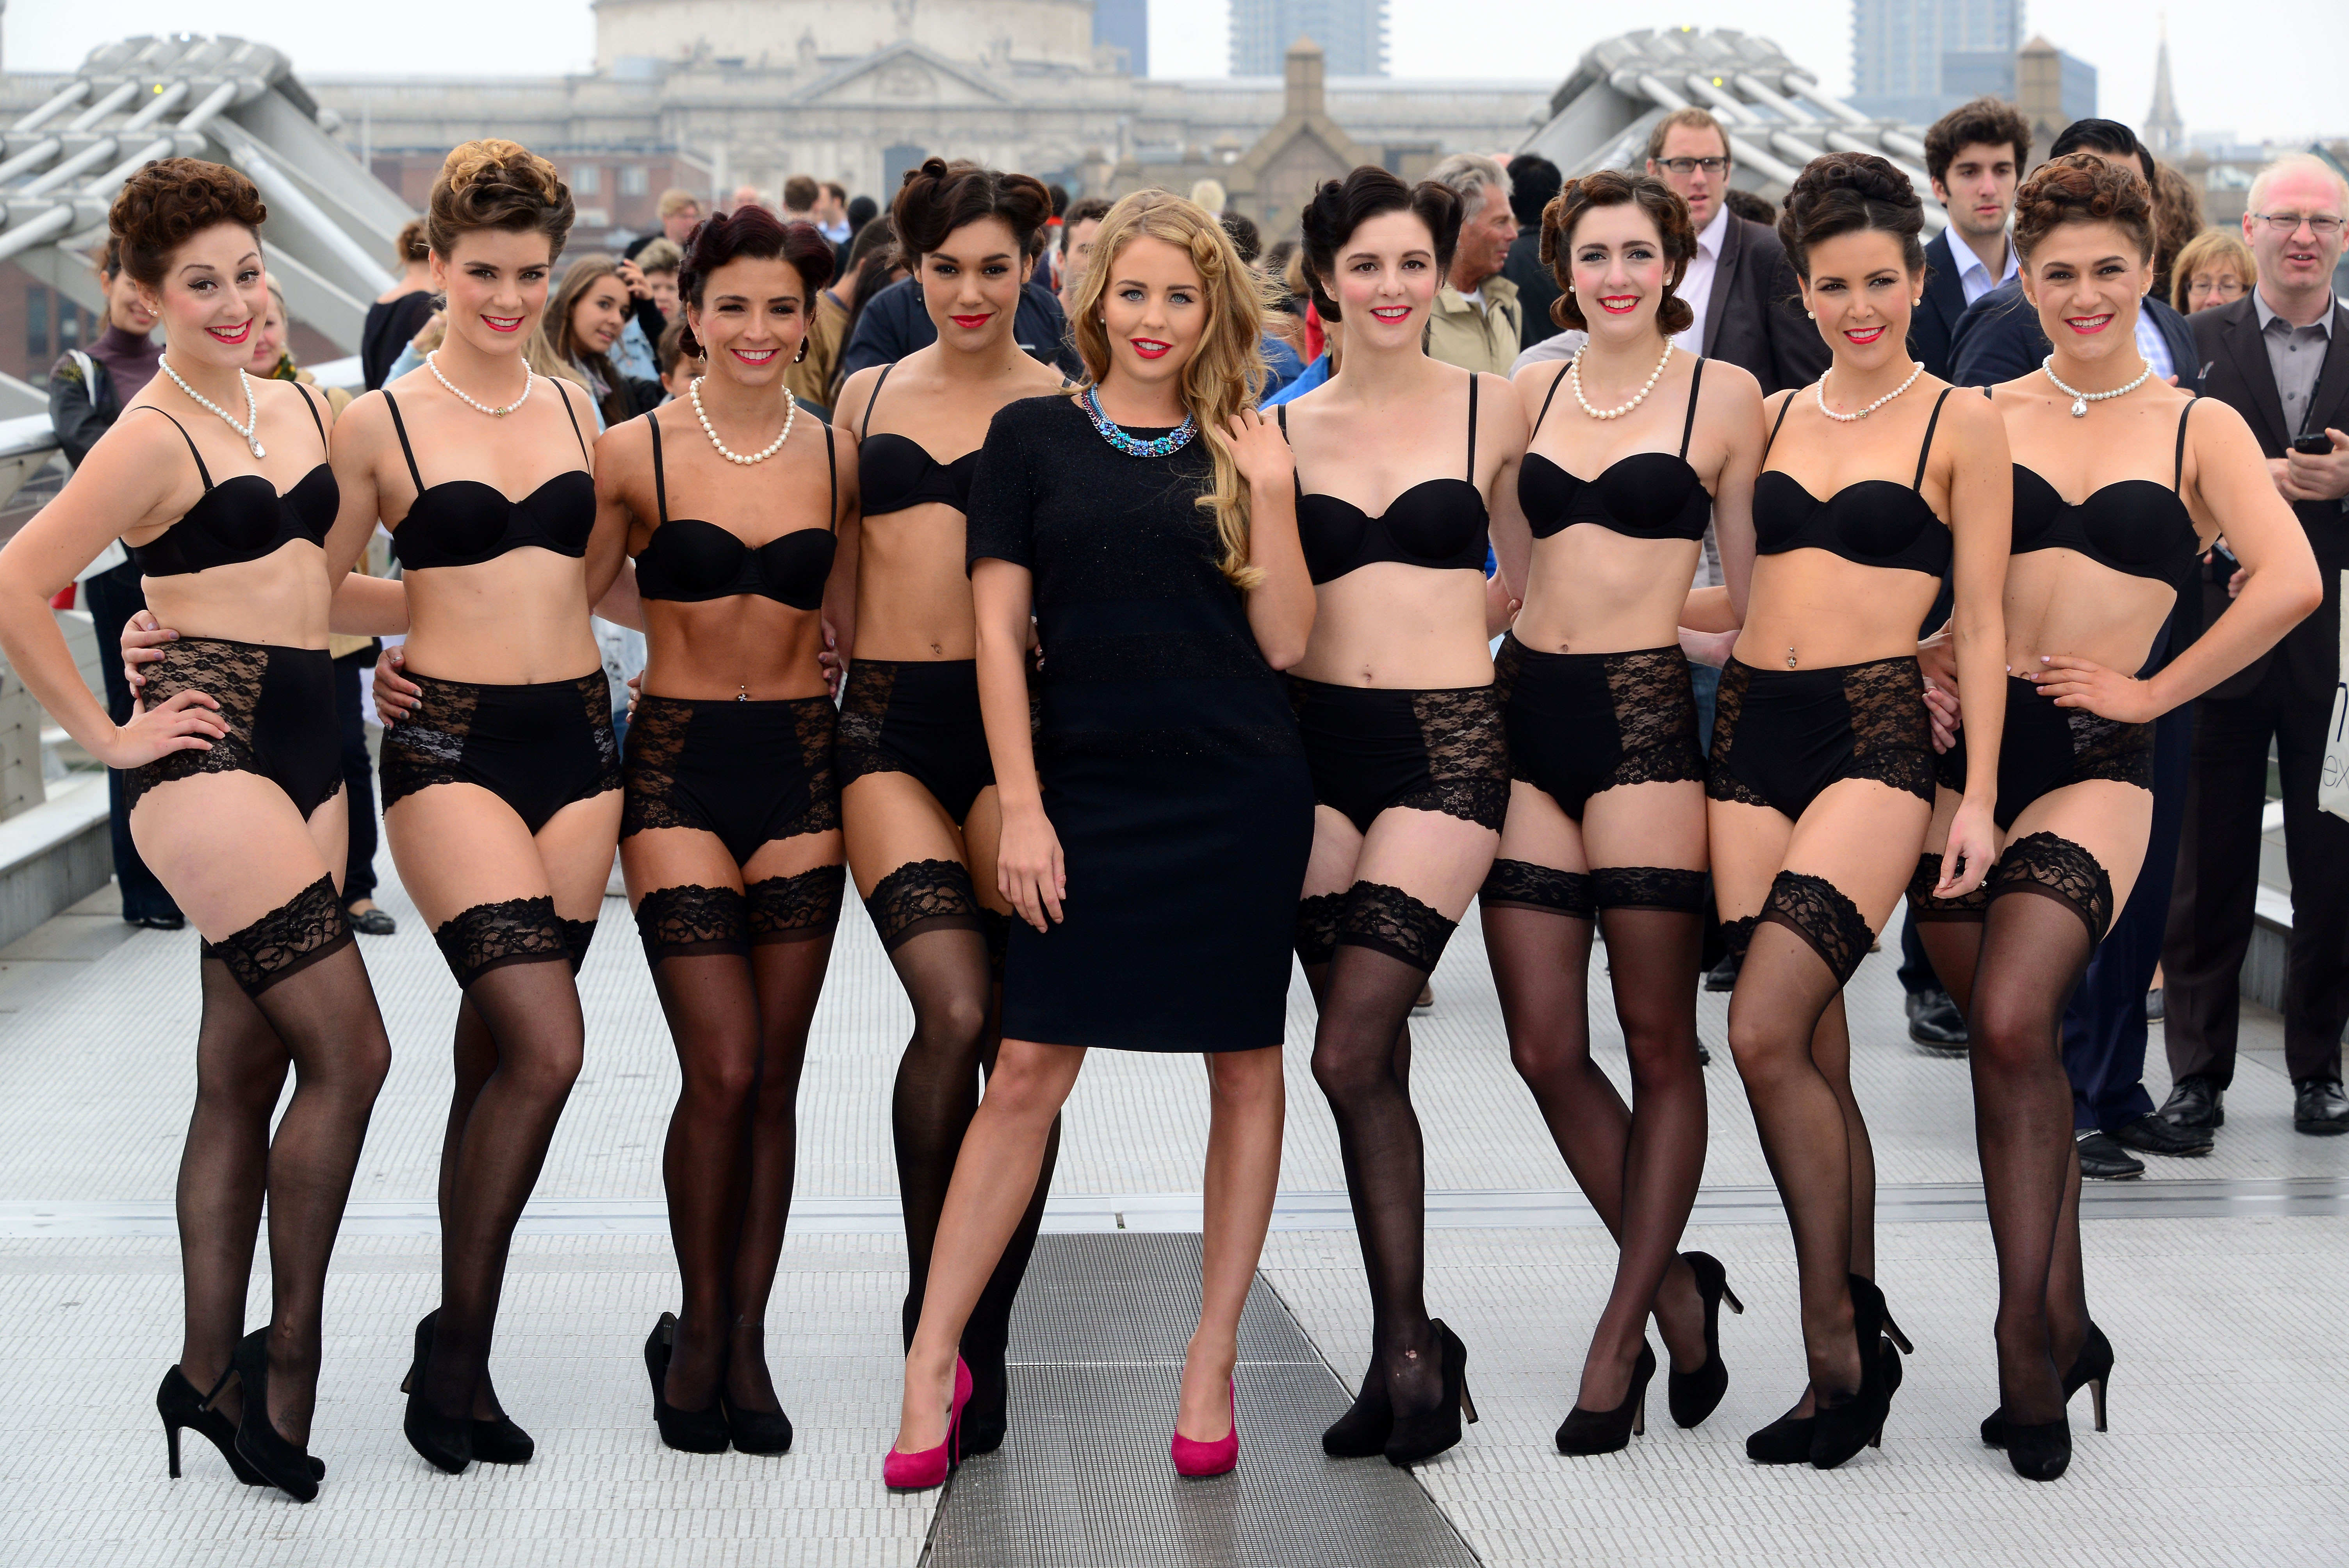 group of dancers in underwear pose with TOWIE star Lydia Bright